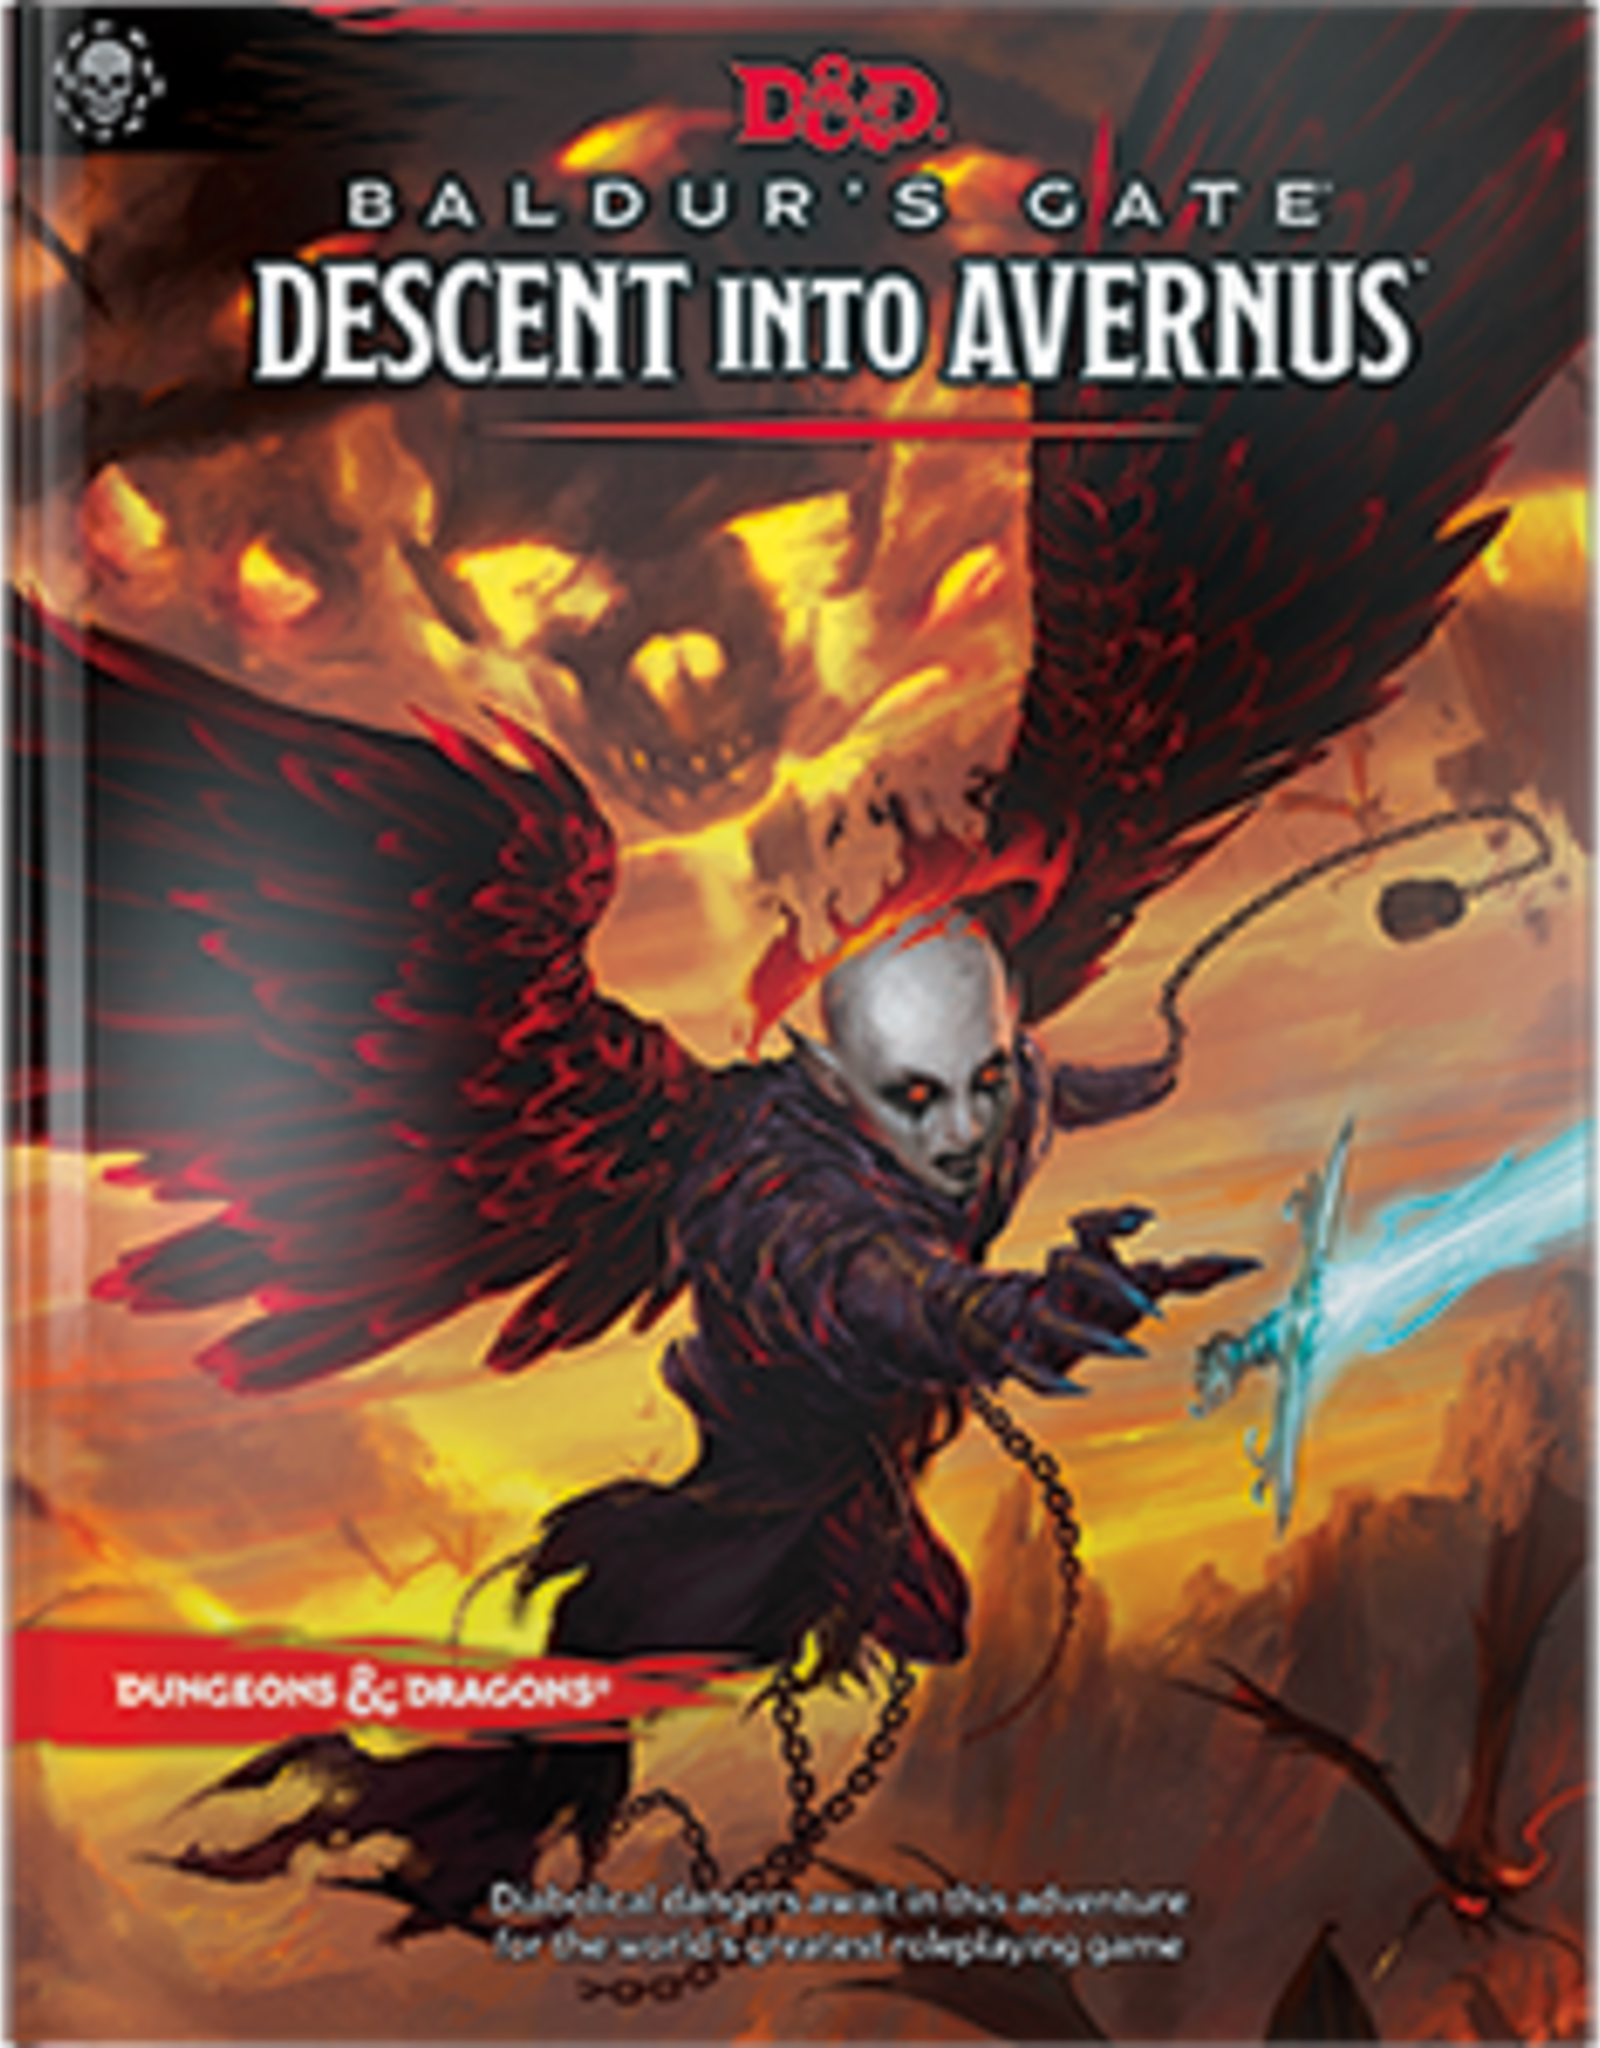 Wizards of the Coast Dungeons & Dragons 5E - Baldur's Gate: Descent into Avernus